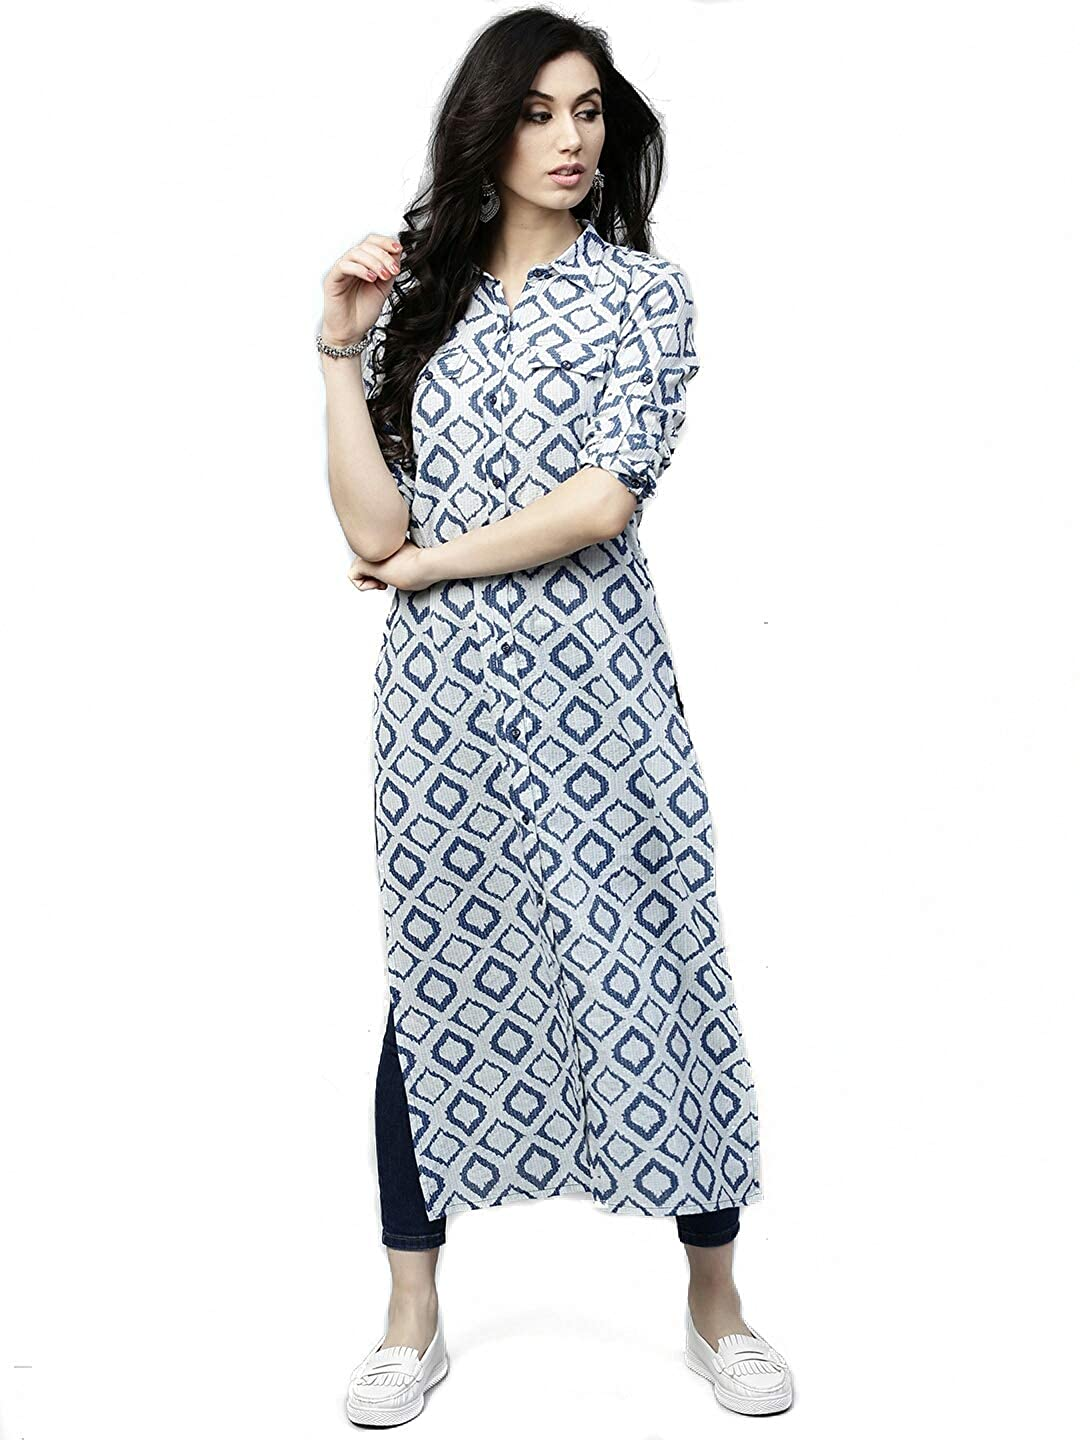 AnjuShree Choice Women Stitched Straight White Blue Printed Cotton Kurti